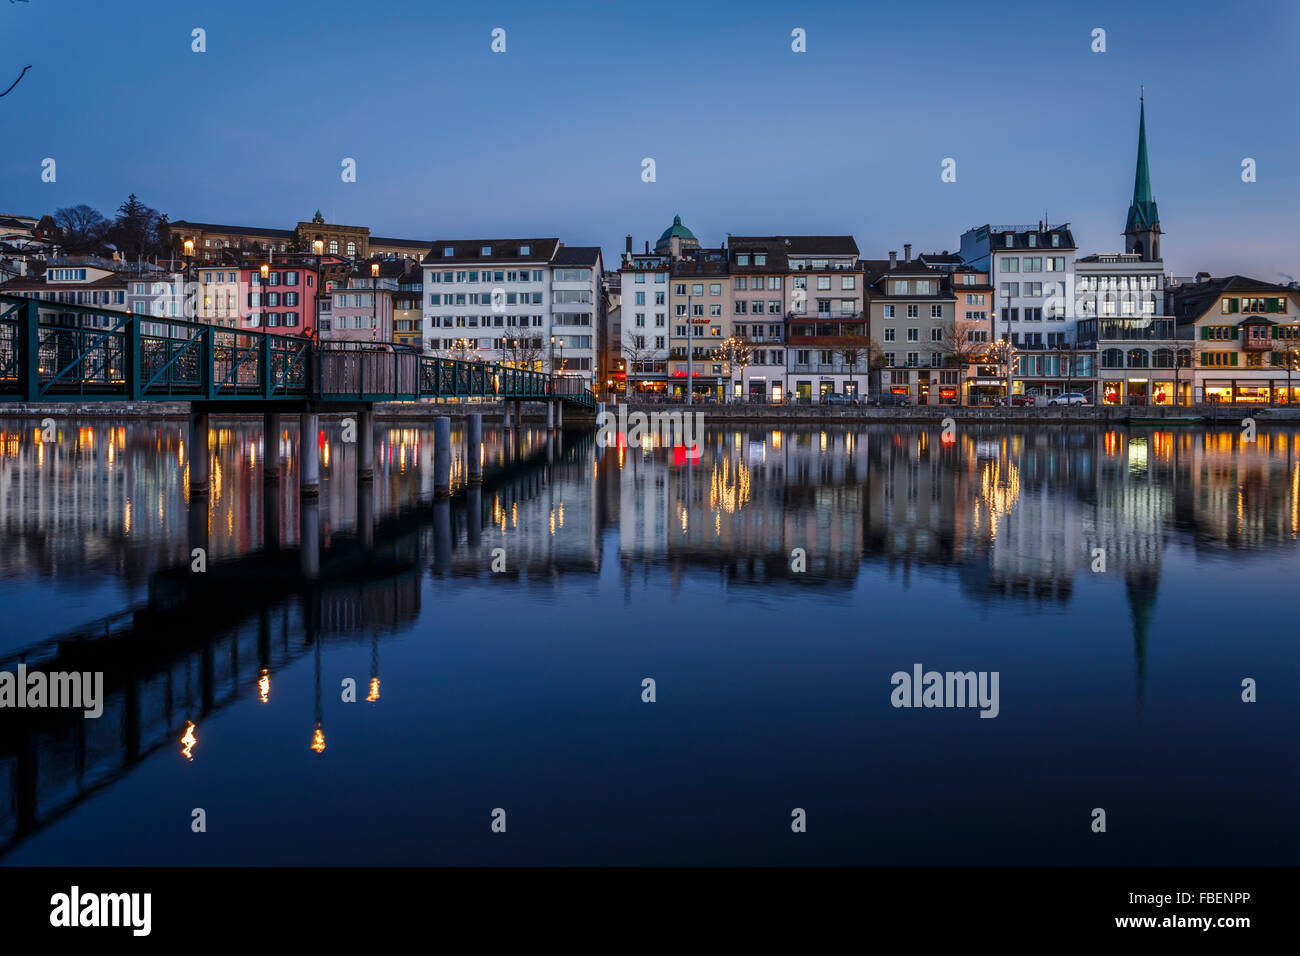 Row of houses of the old town of Zurich reflected on the Limmat River at night,Switzerland. - Stock Image